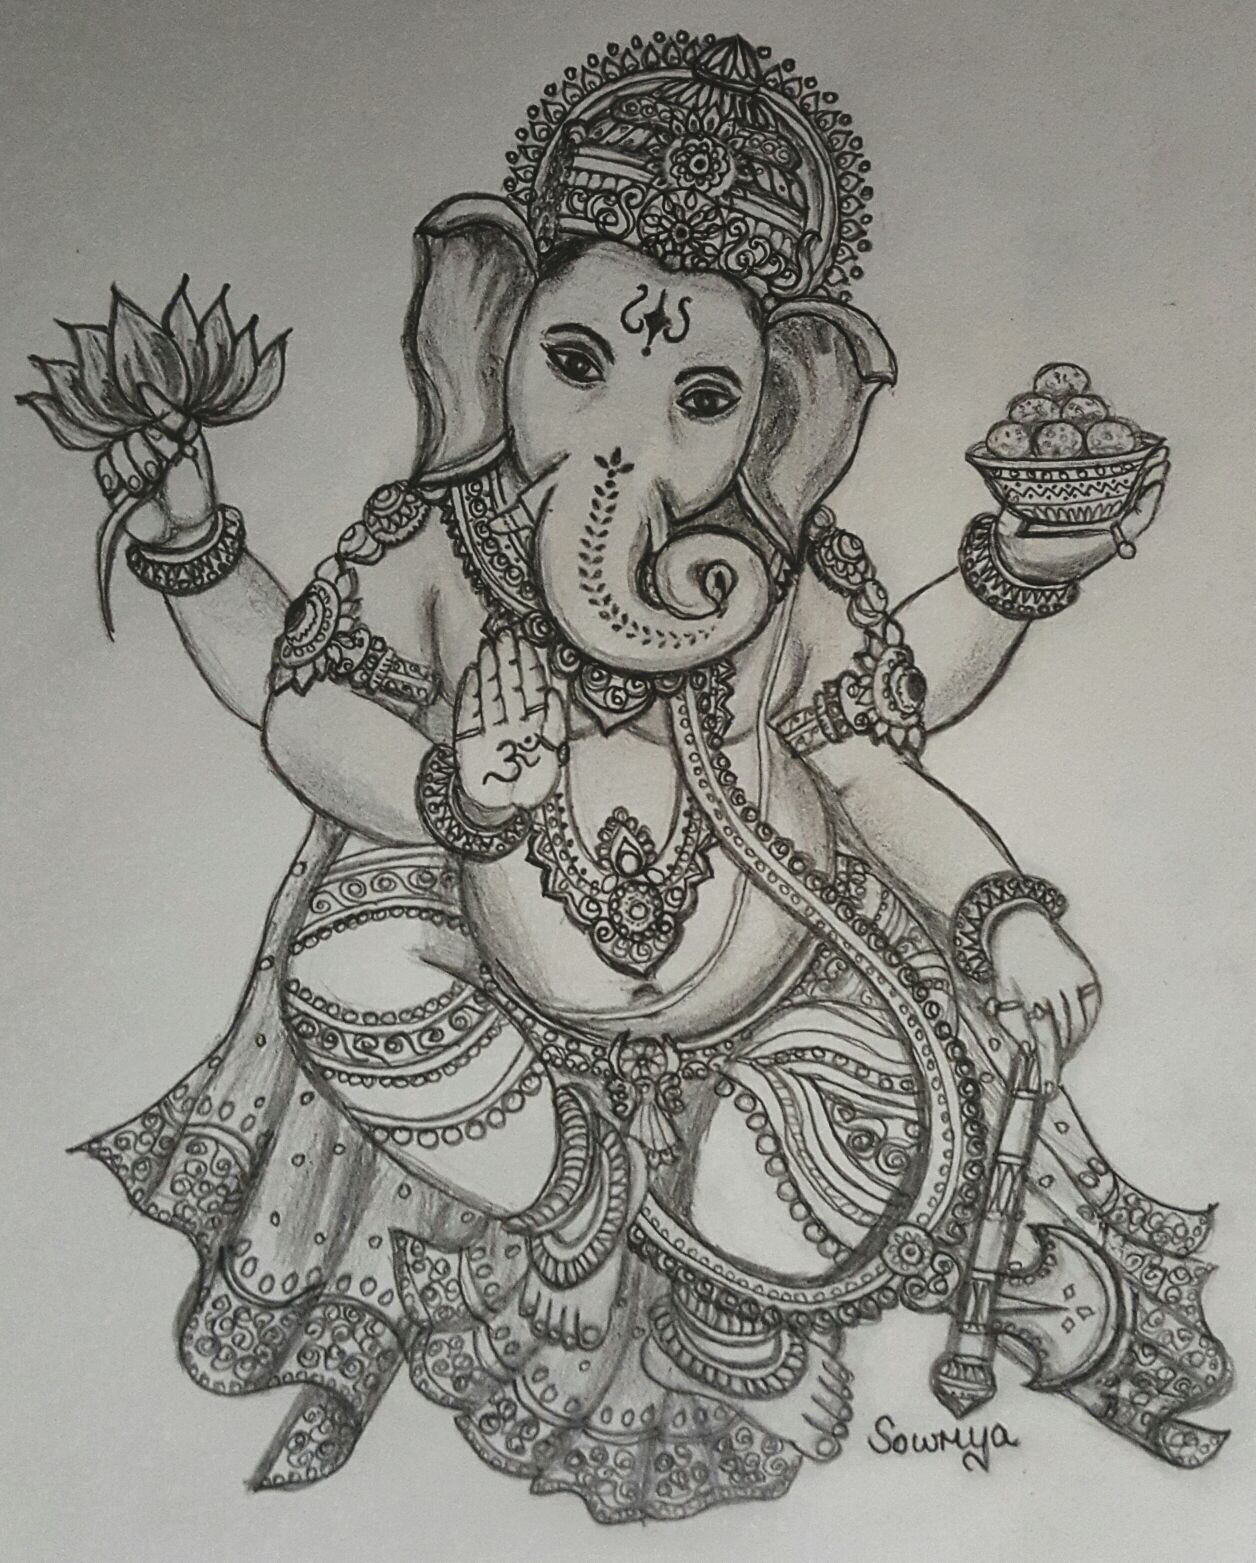 Vinayaka chaturthi special drawing by smt sowmya murali sage of